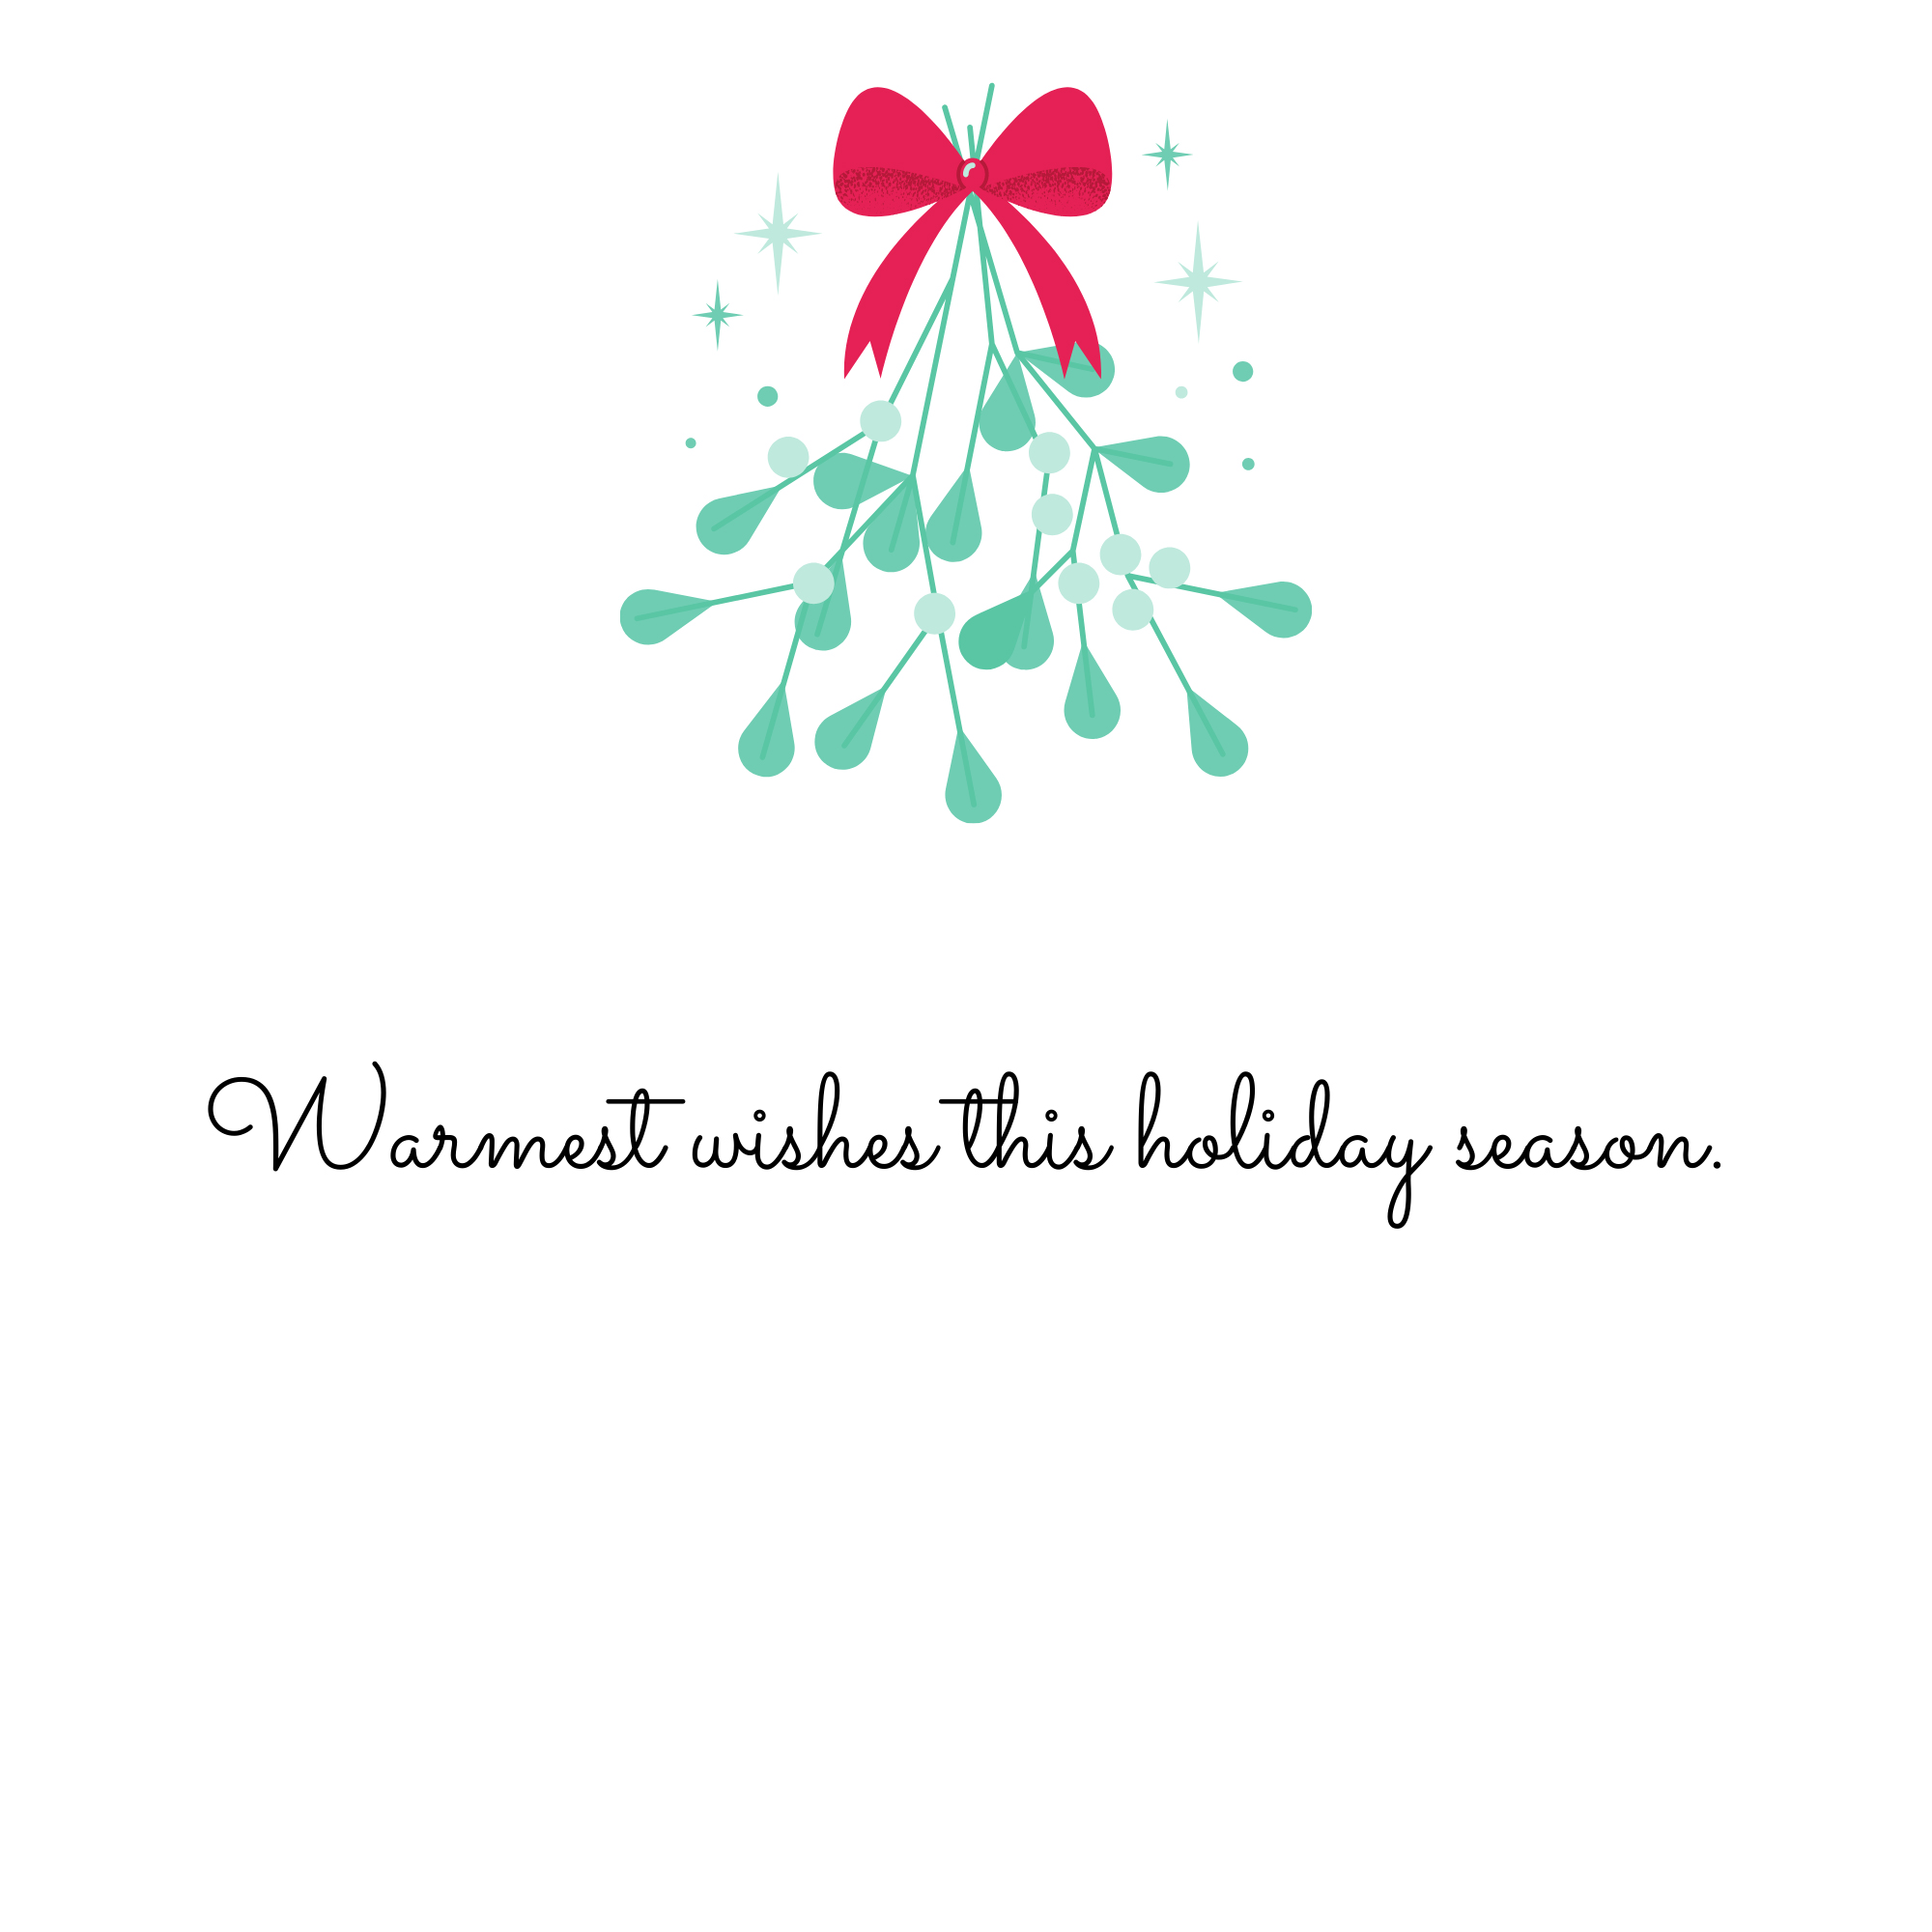 Warmest wishes this holiday season